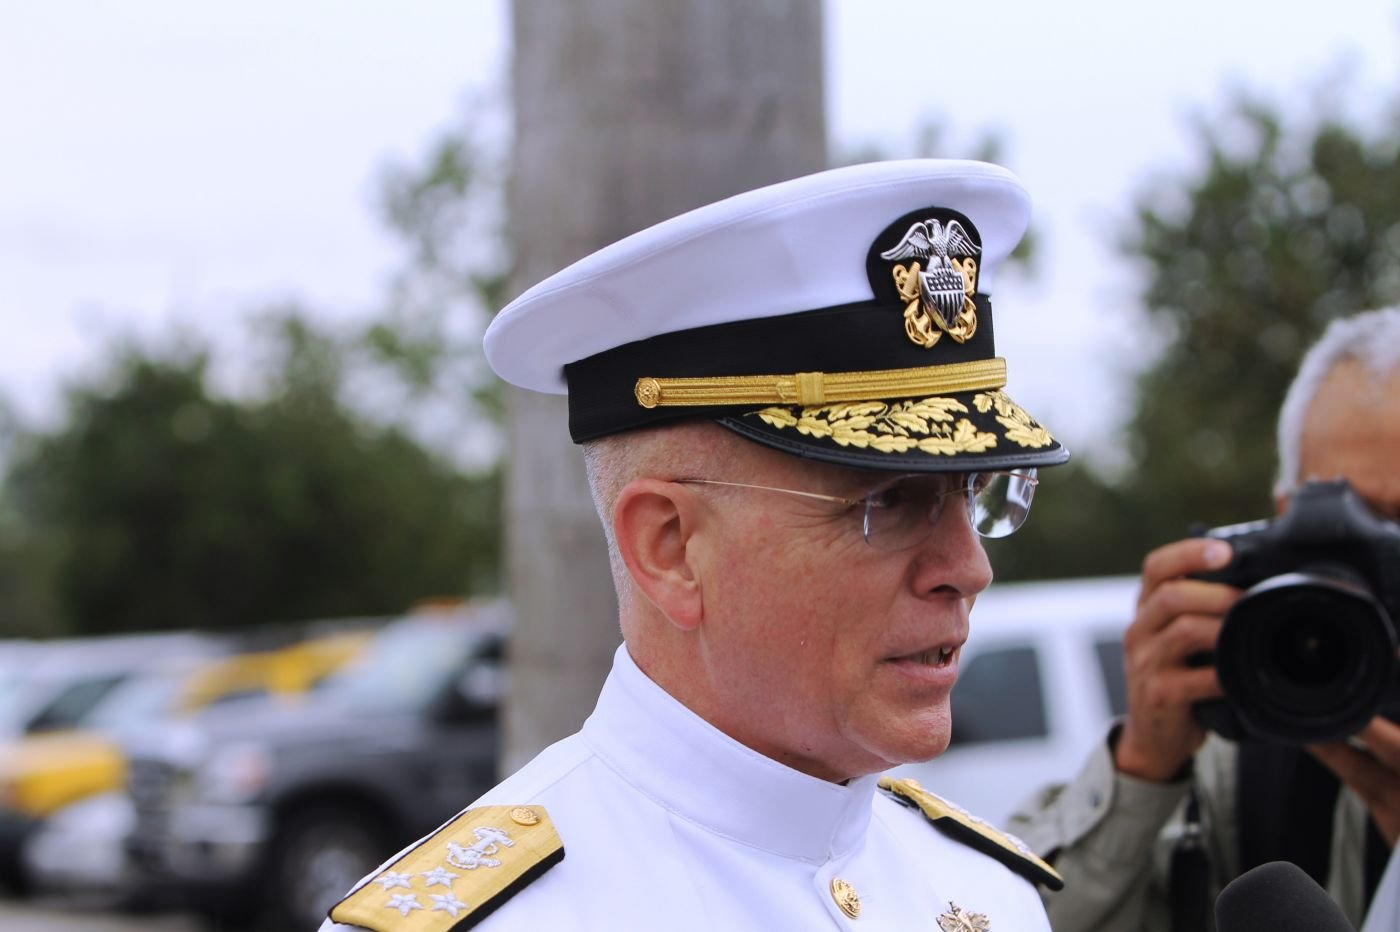 Adm. Tidd Assumes Command of SOUTHCOM at Celebration of Gen. Kelly, Accomplishments and Partnerships